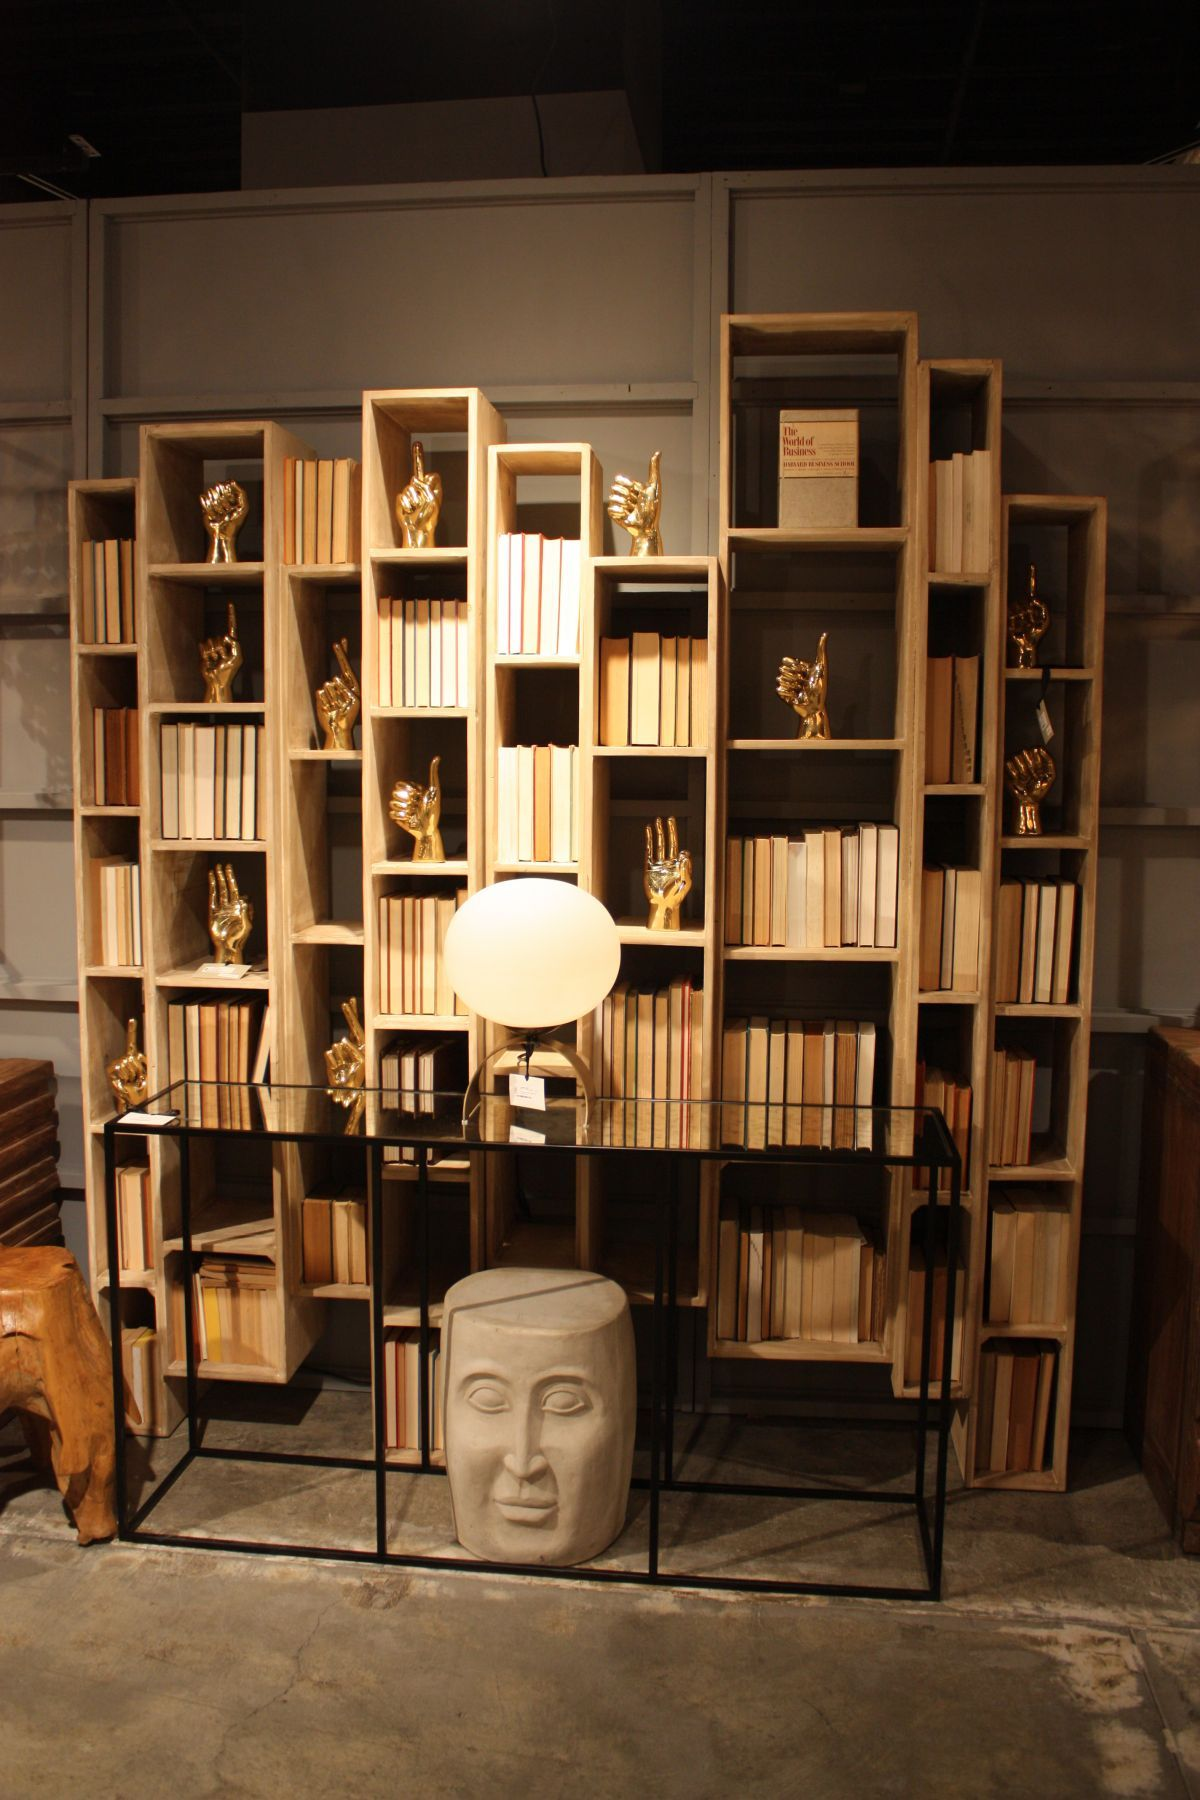 Home Library Bookcase Ideas So You Can Surround Yourself With Stories Hausbibliothek Bucherregal Design Regal Ideen